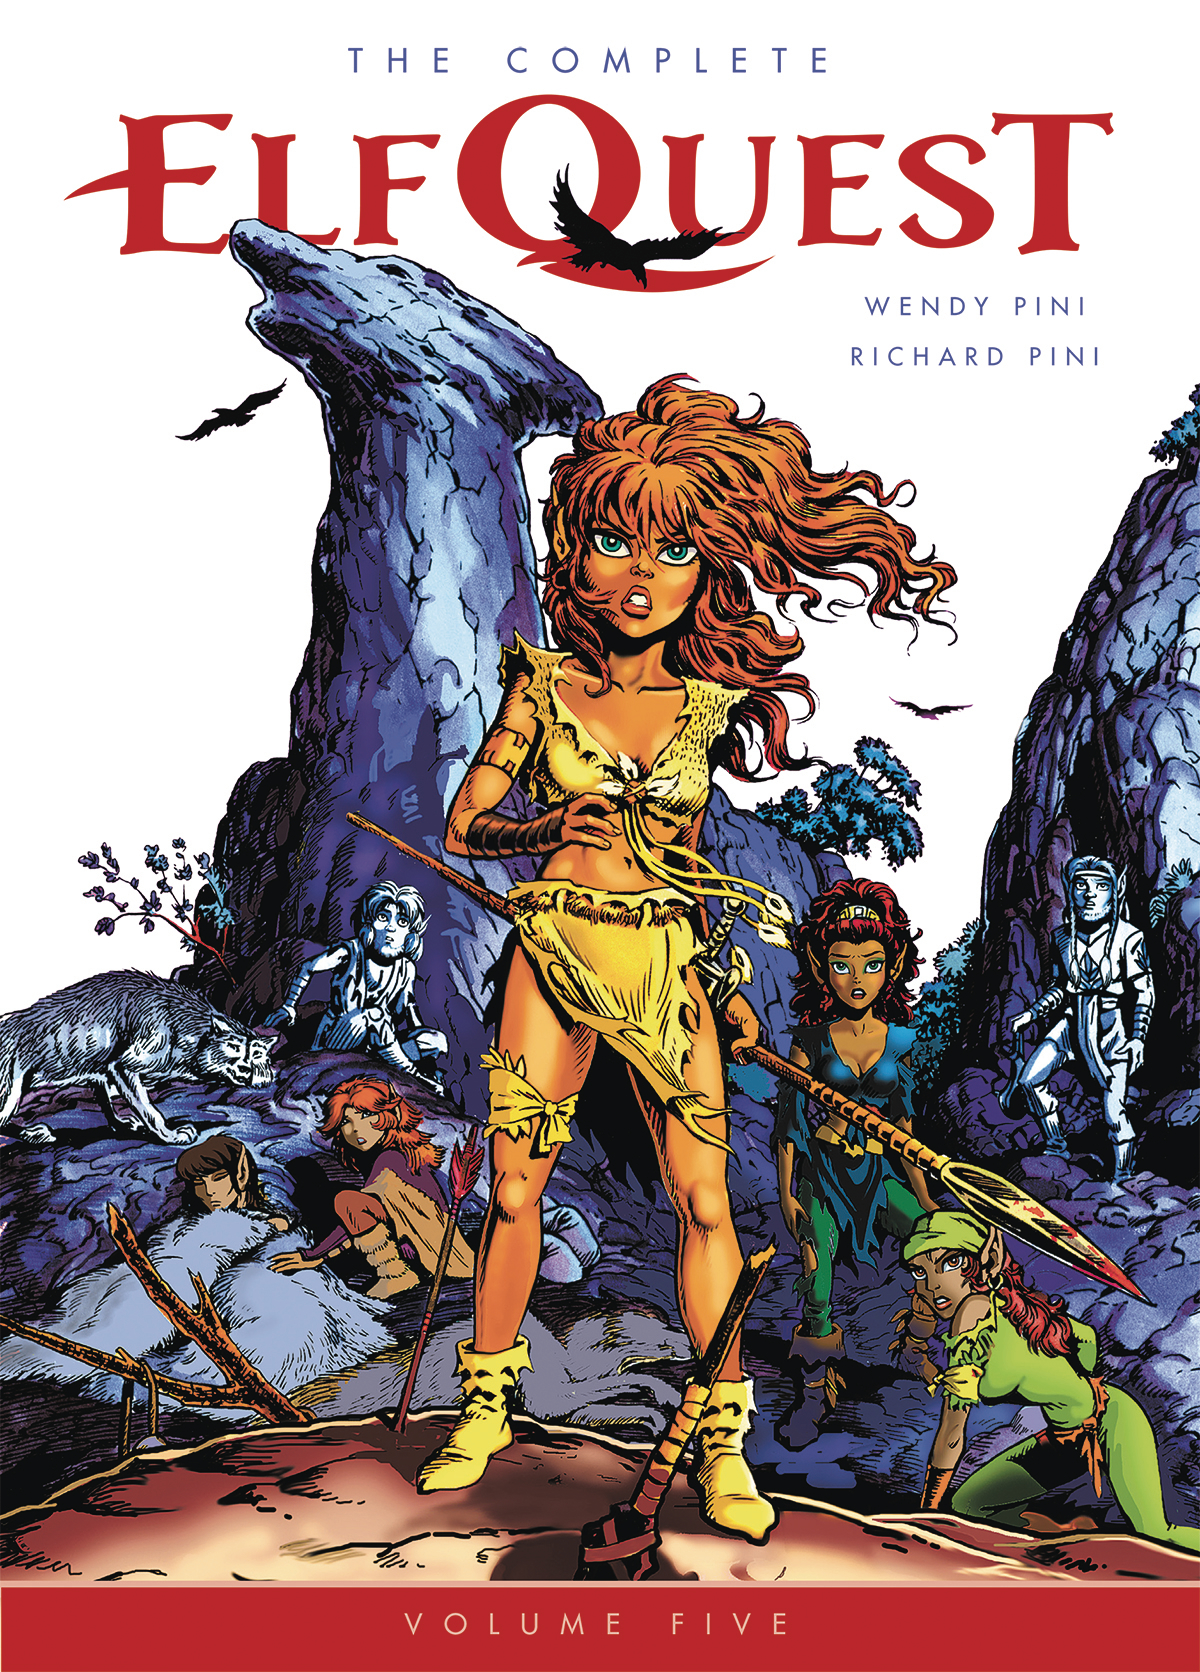 COMPLETE ELFQUEST TP VOL 05 (JUL180493)